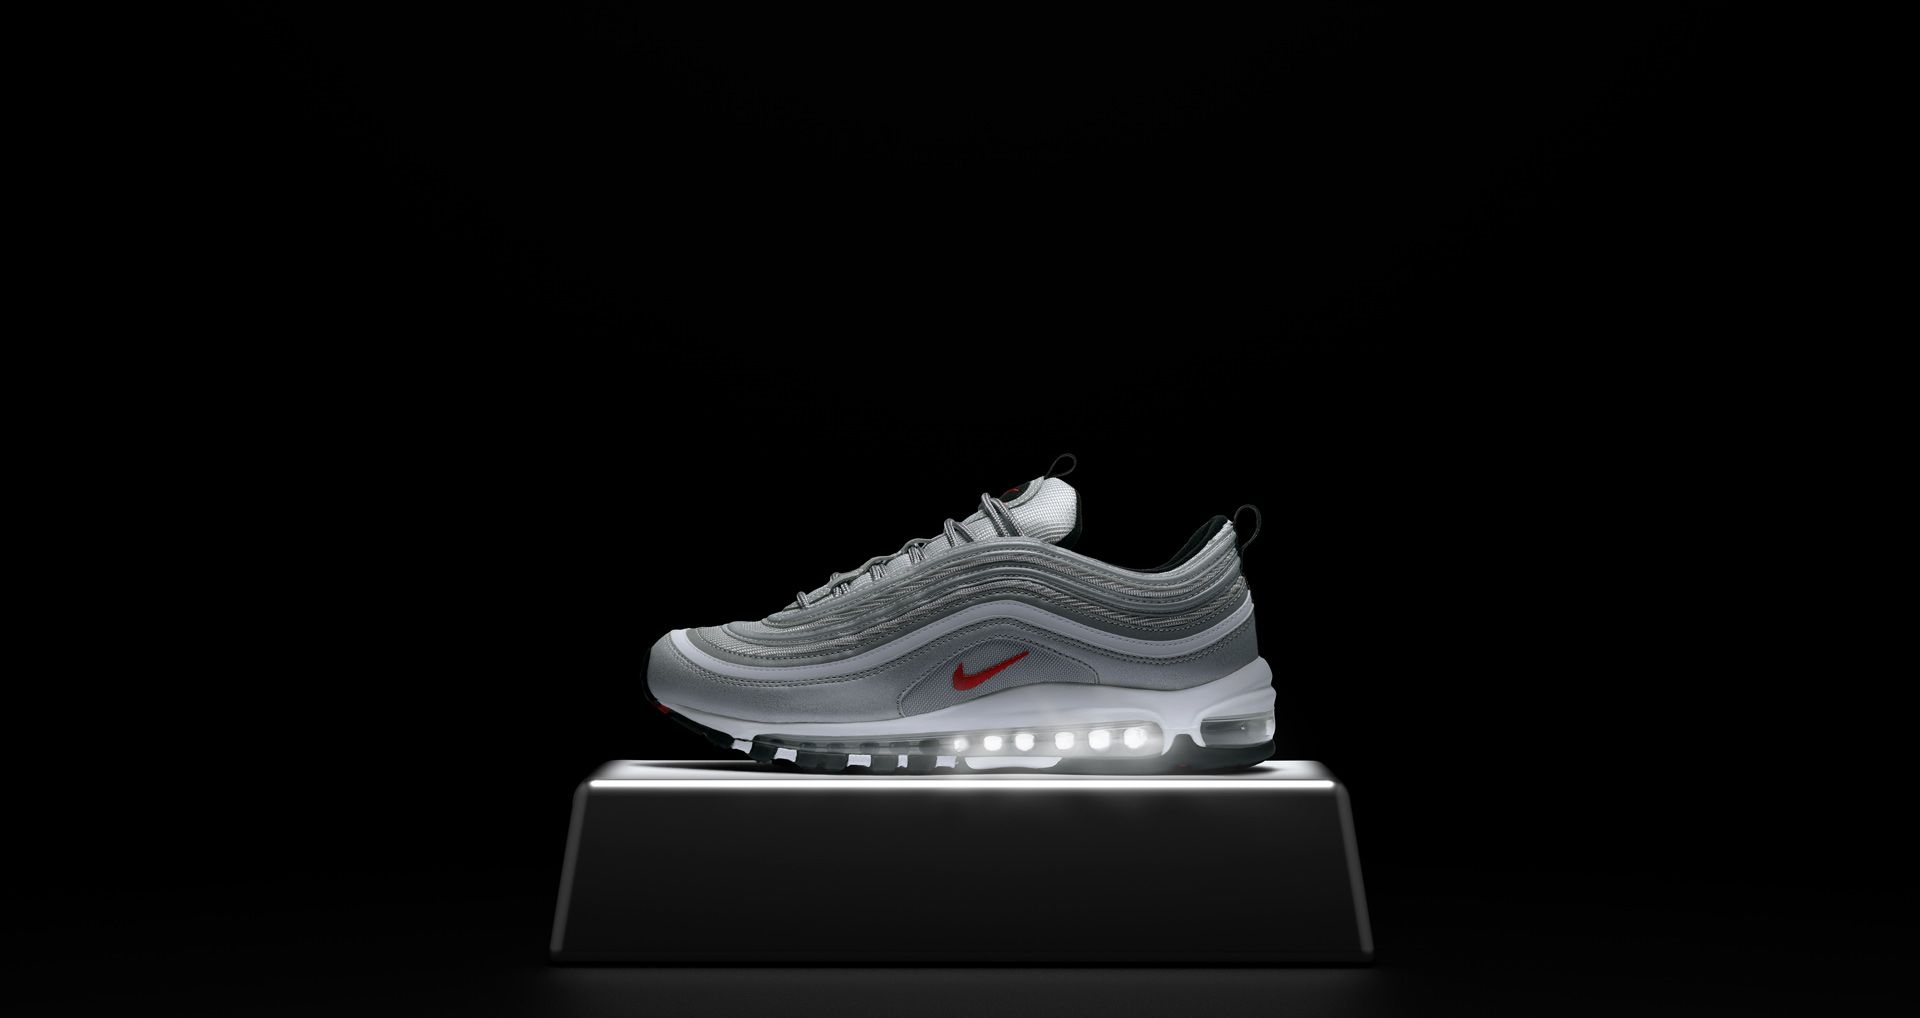 Nike Air Max 97 Silver Shoes For Women Wholesale Cheap